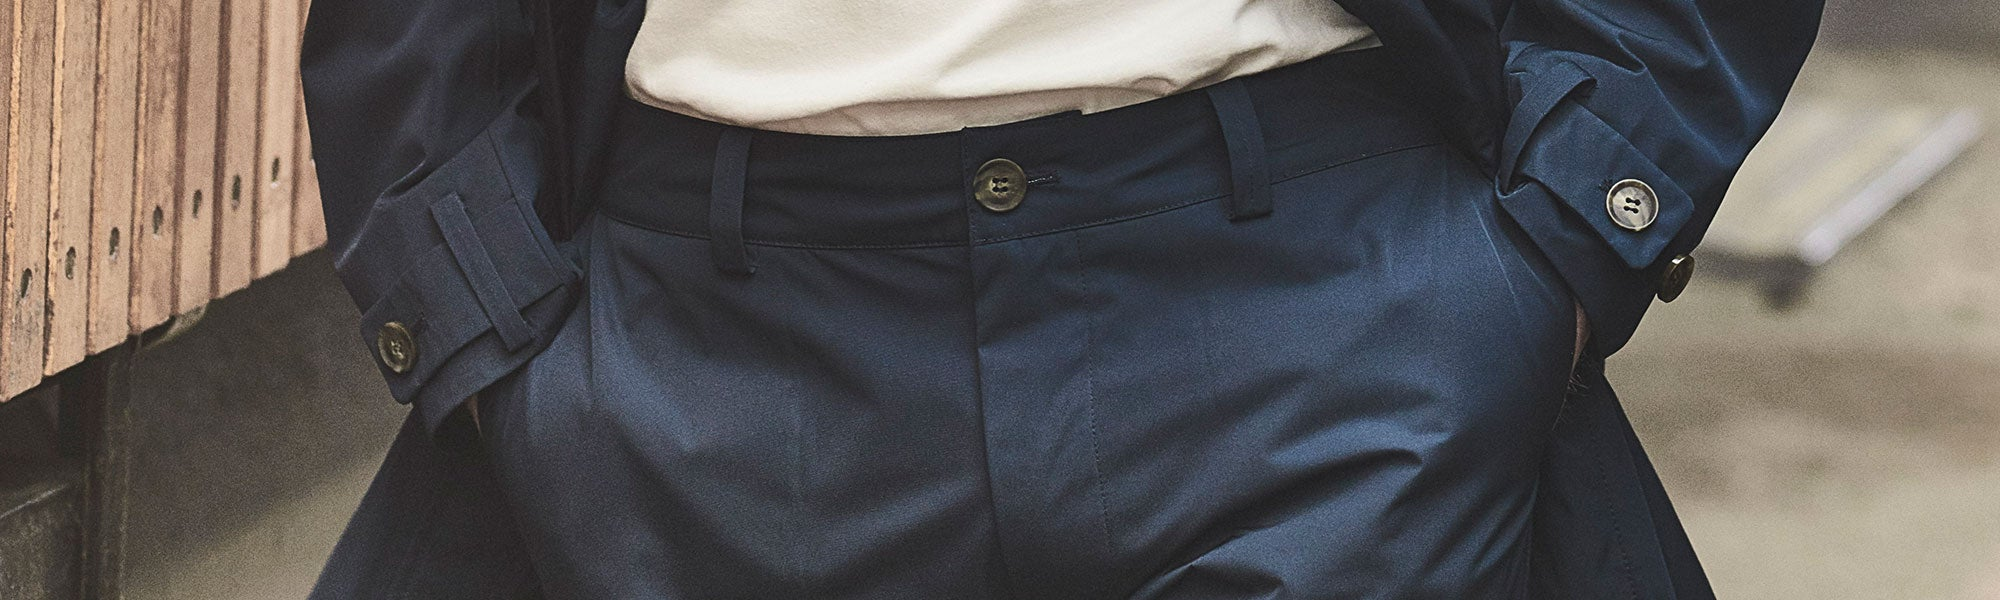 Didriksons bottoms for men